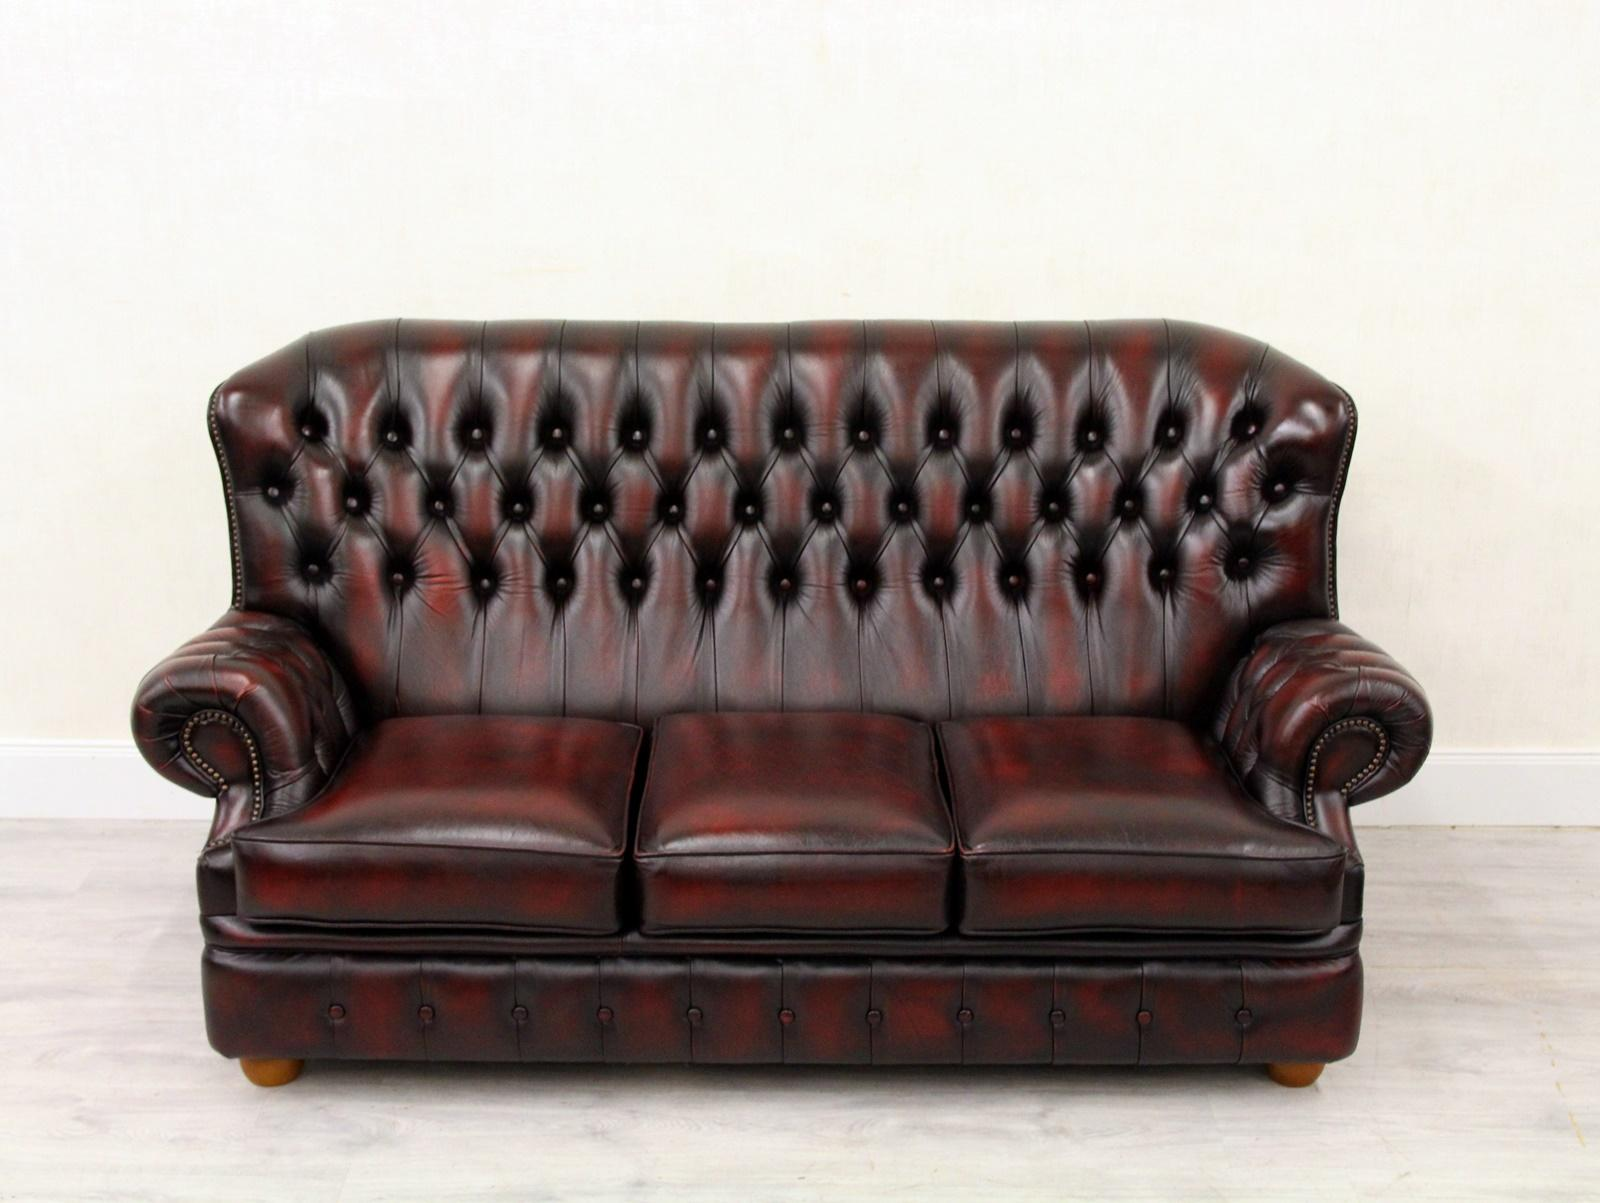 Bettsofa Antik Chesterfield Sofa Leder Antik Vintage Couch Englisch Chippendale